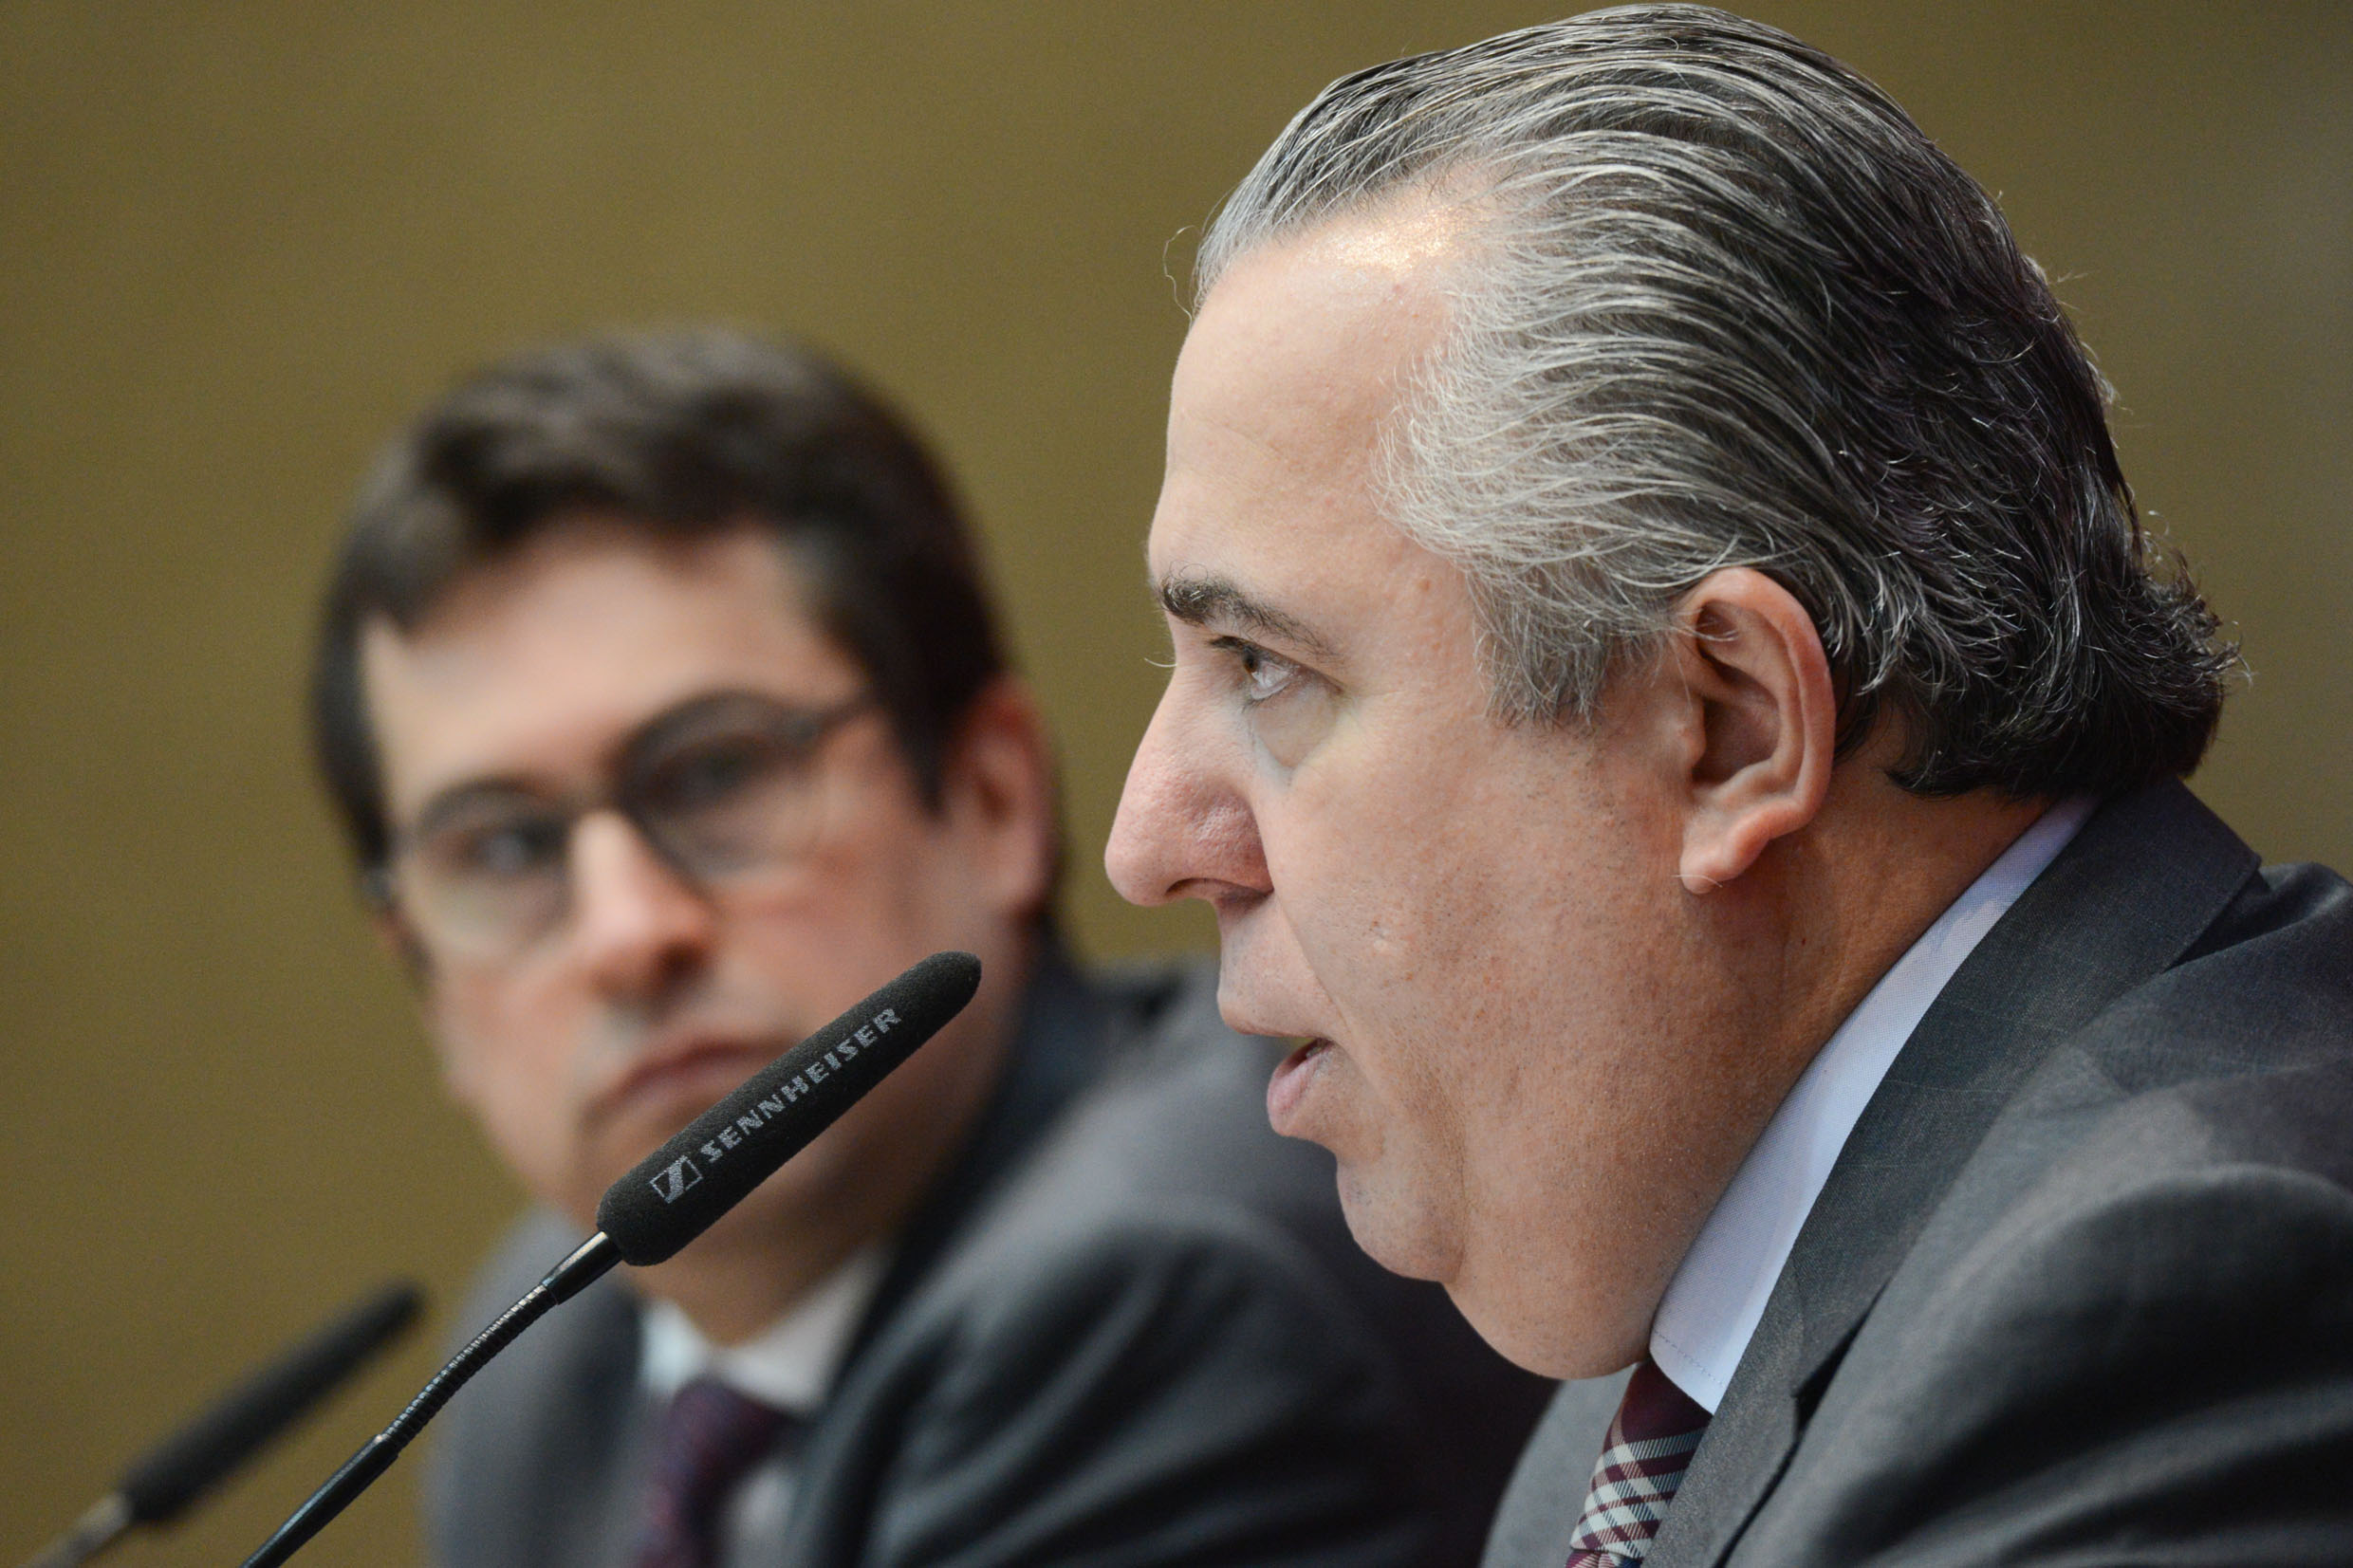 Adilson Rossi <a style='float:right' href='https://www3.al.sp.gov.br/repositorio/noticia/N-06-2016/fg191808.jpg' target=_blank><img src='/_img/material-file-download-white.png' width='14px' alt='Clique para baixar a imagem'></a>